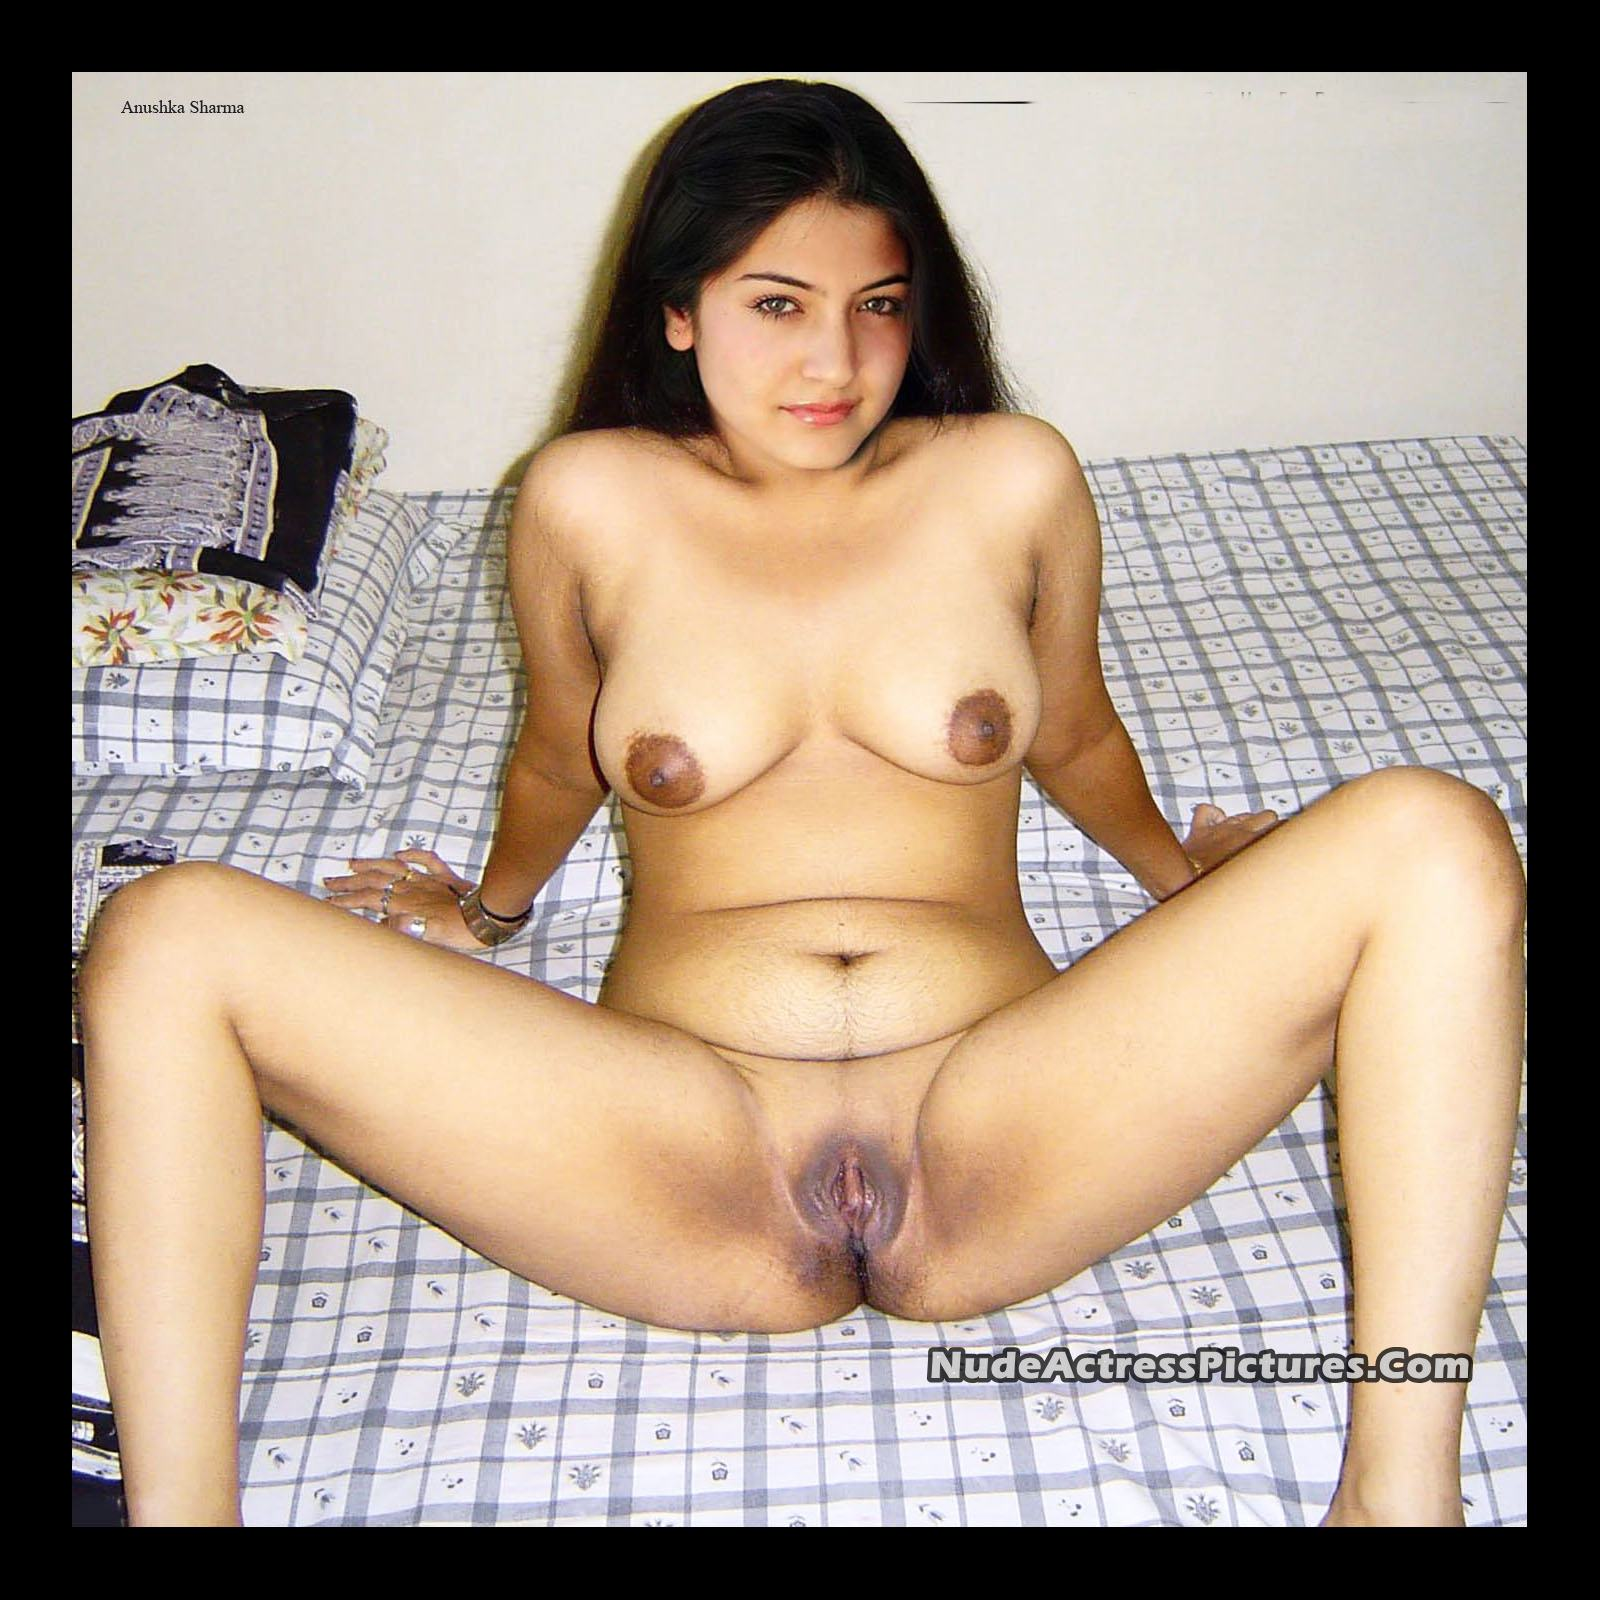 Nude thirty year old woman pussy